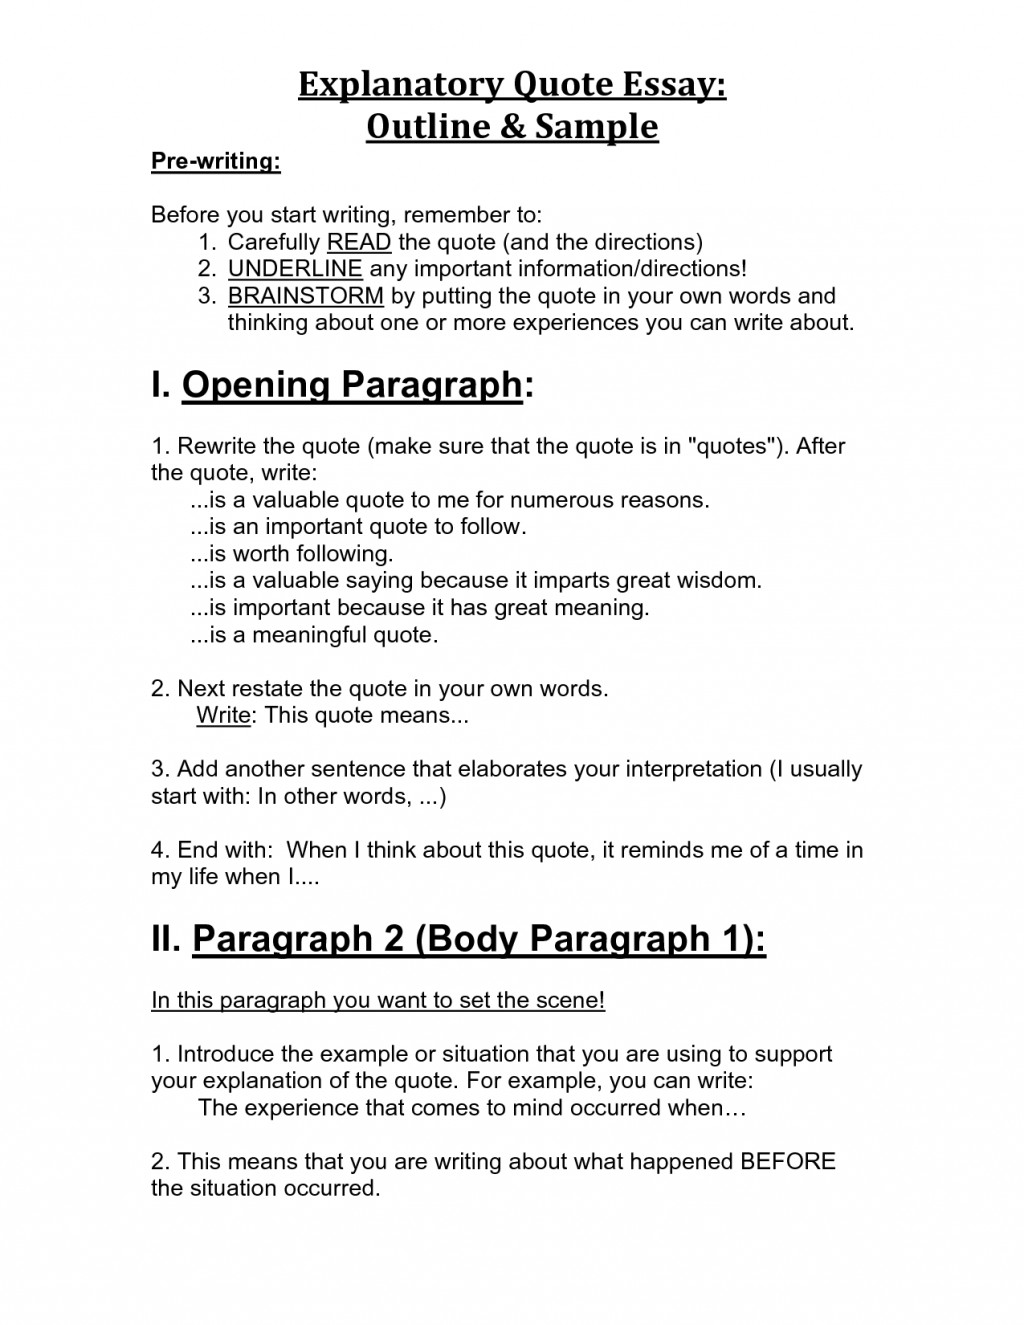 007 Explanation Essay Expository Format High School Common Core Explanatory Of Informativeexplanatory Quote Outlines Examples Informative For Middle Example How To Write Singular An Introduction Large